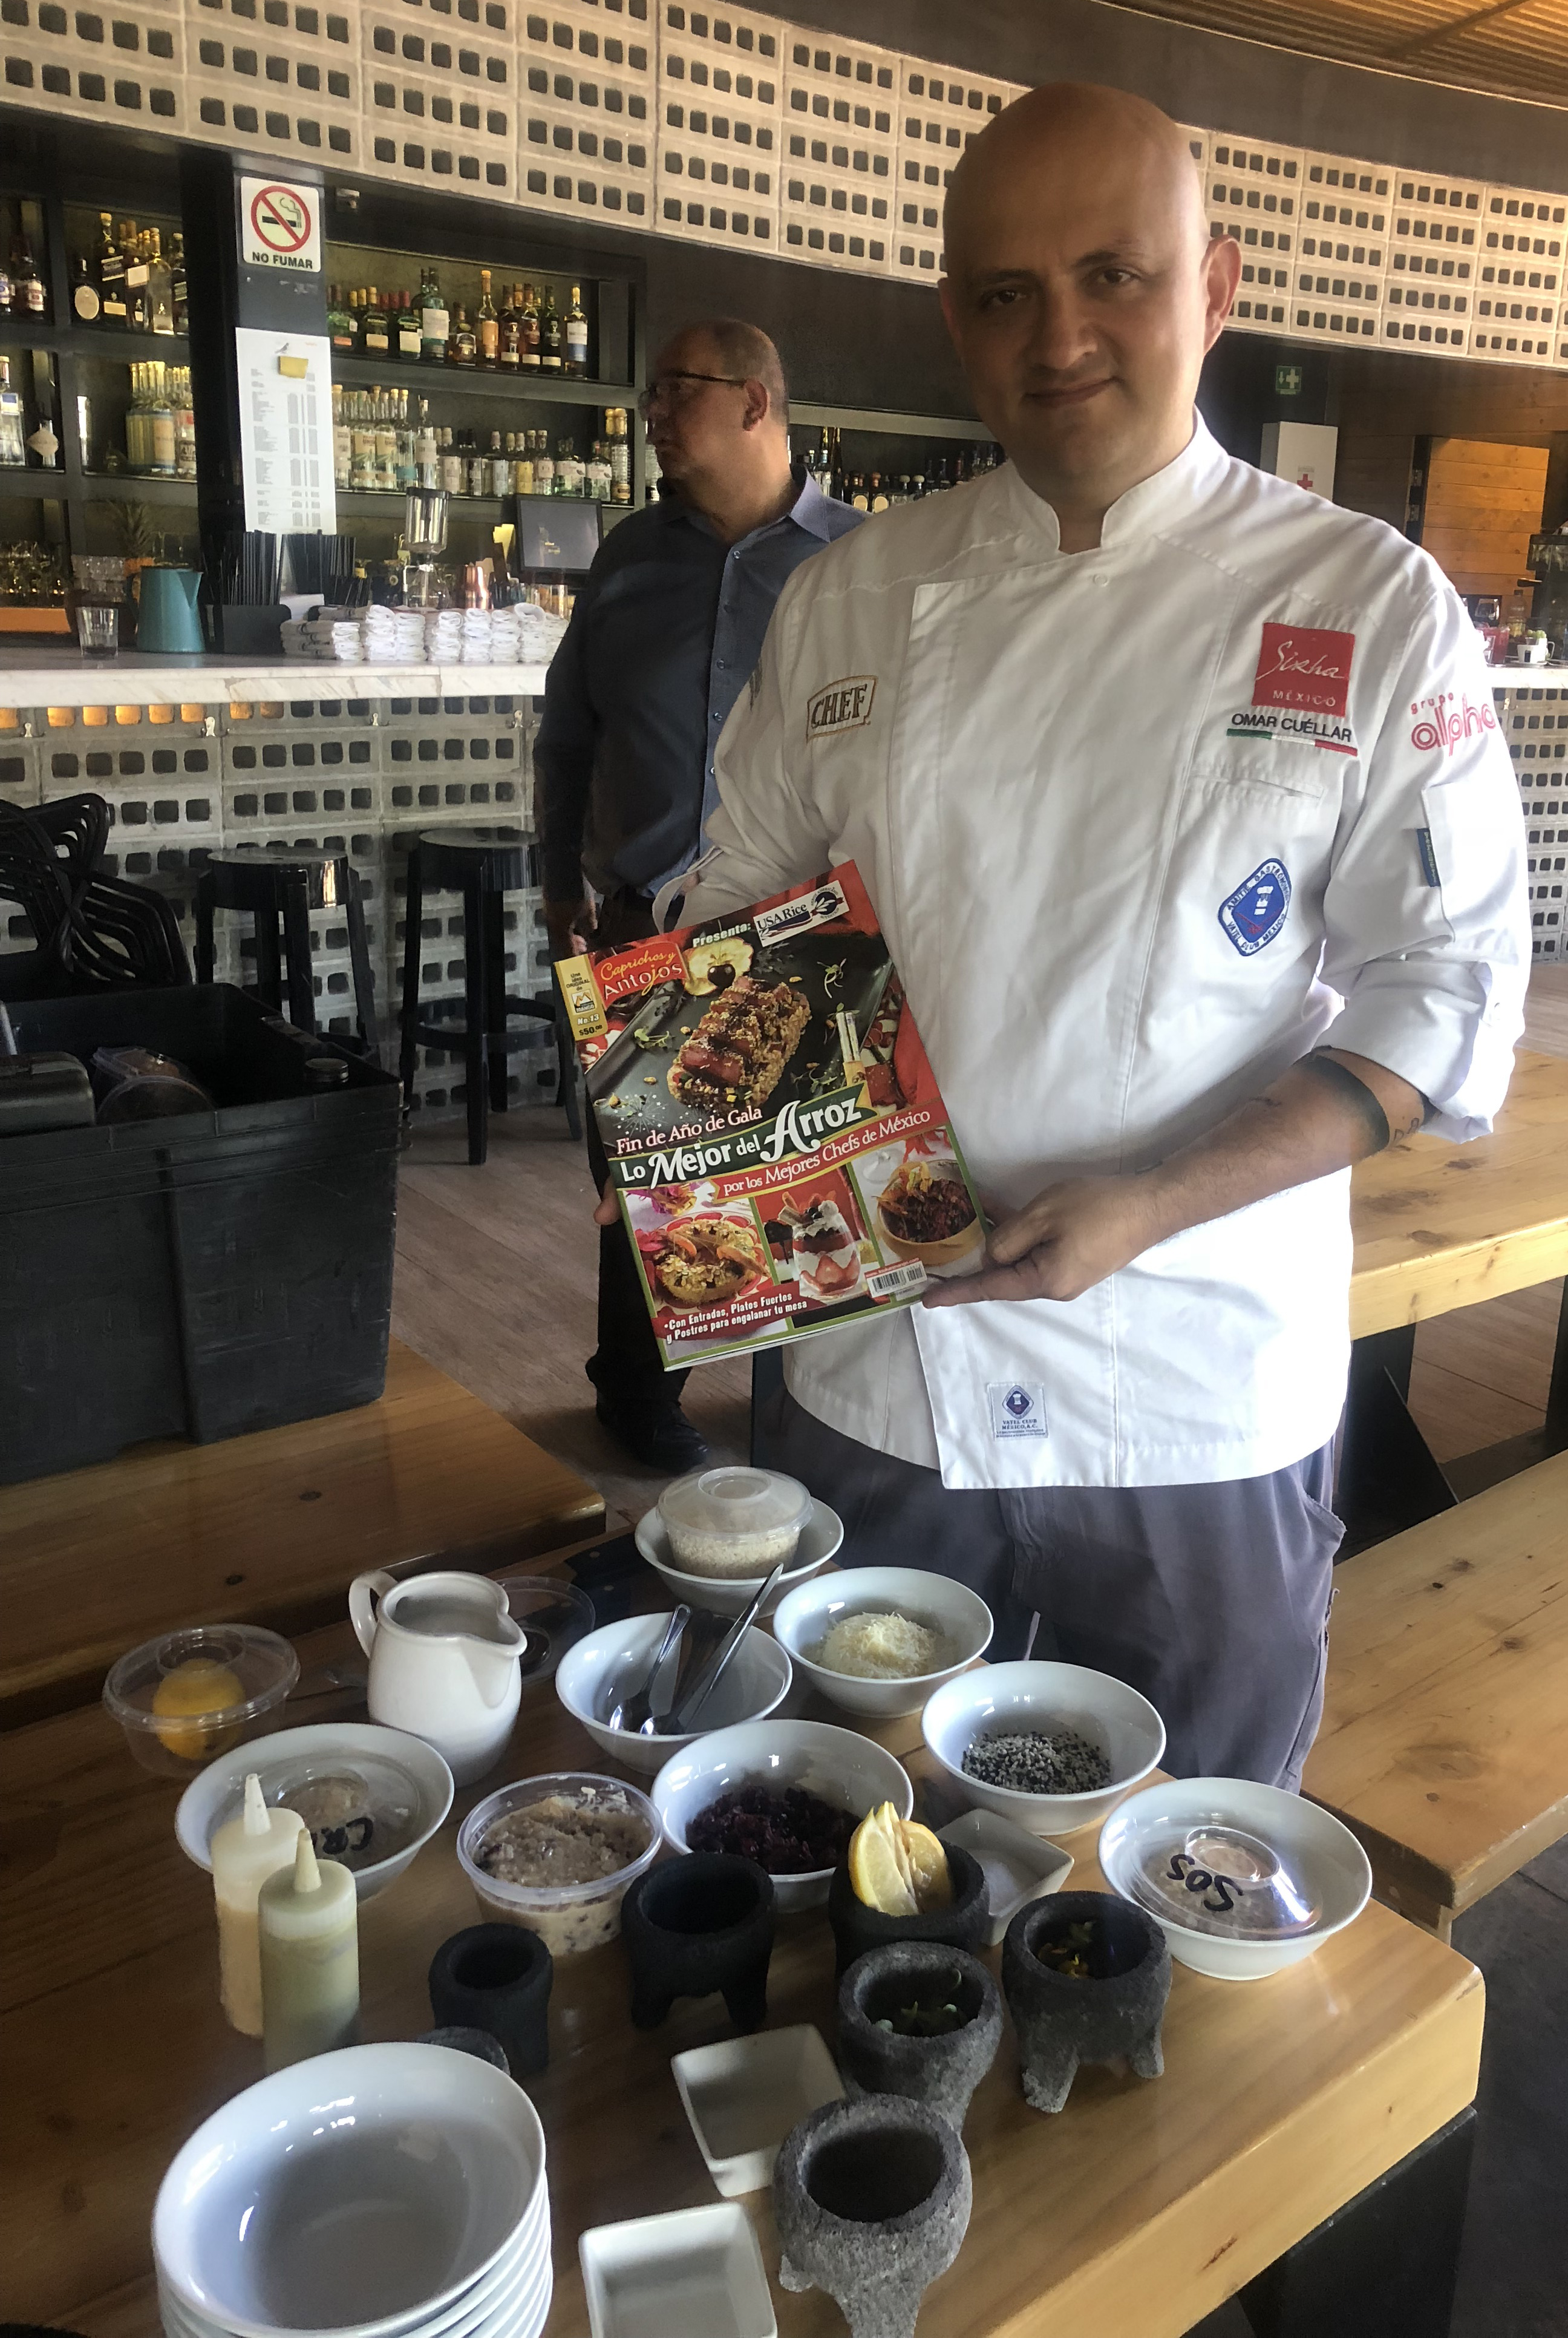 Chef stands in front of table full of ingredients, holding cookbook